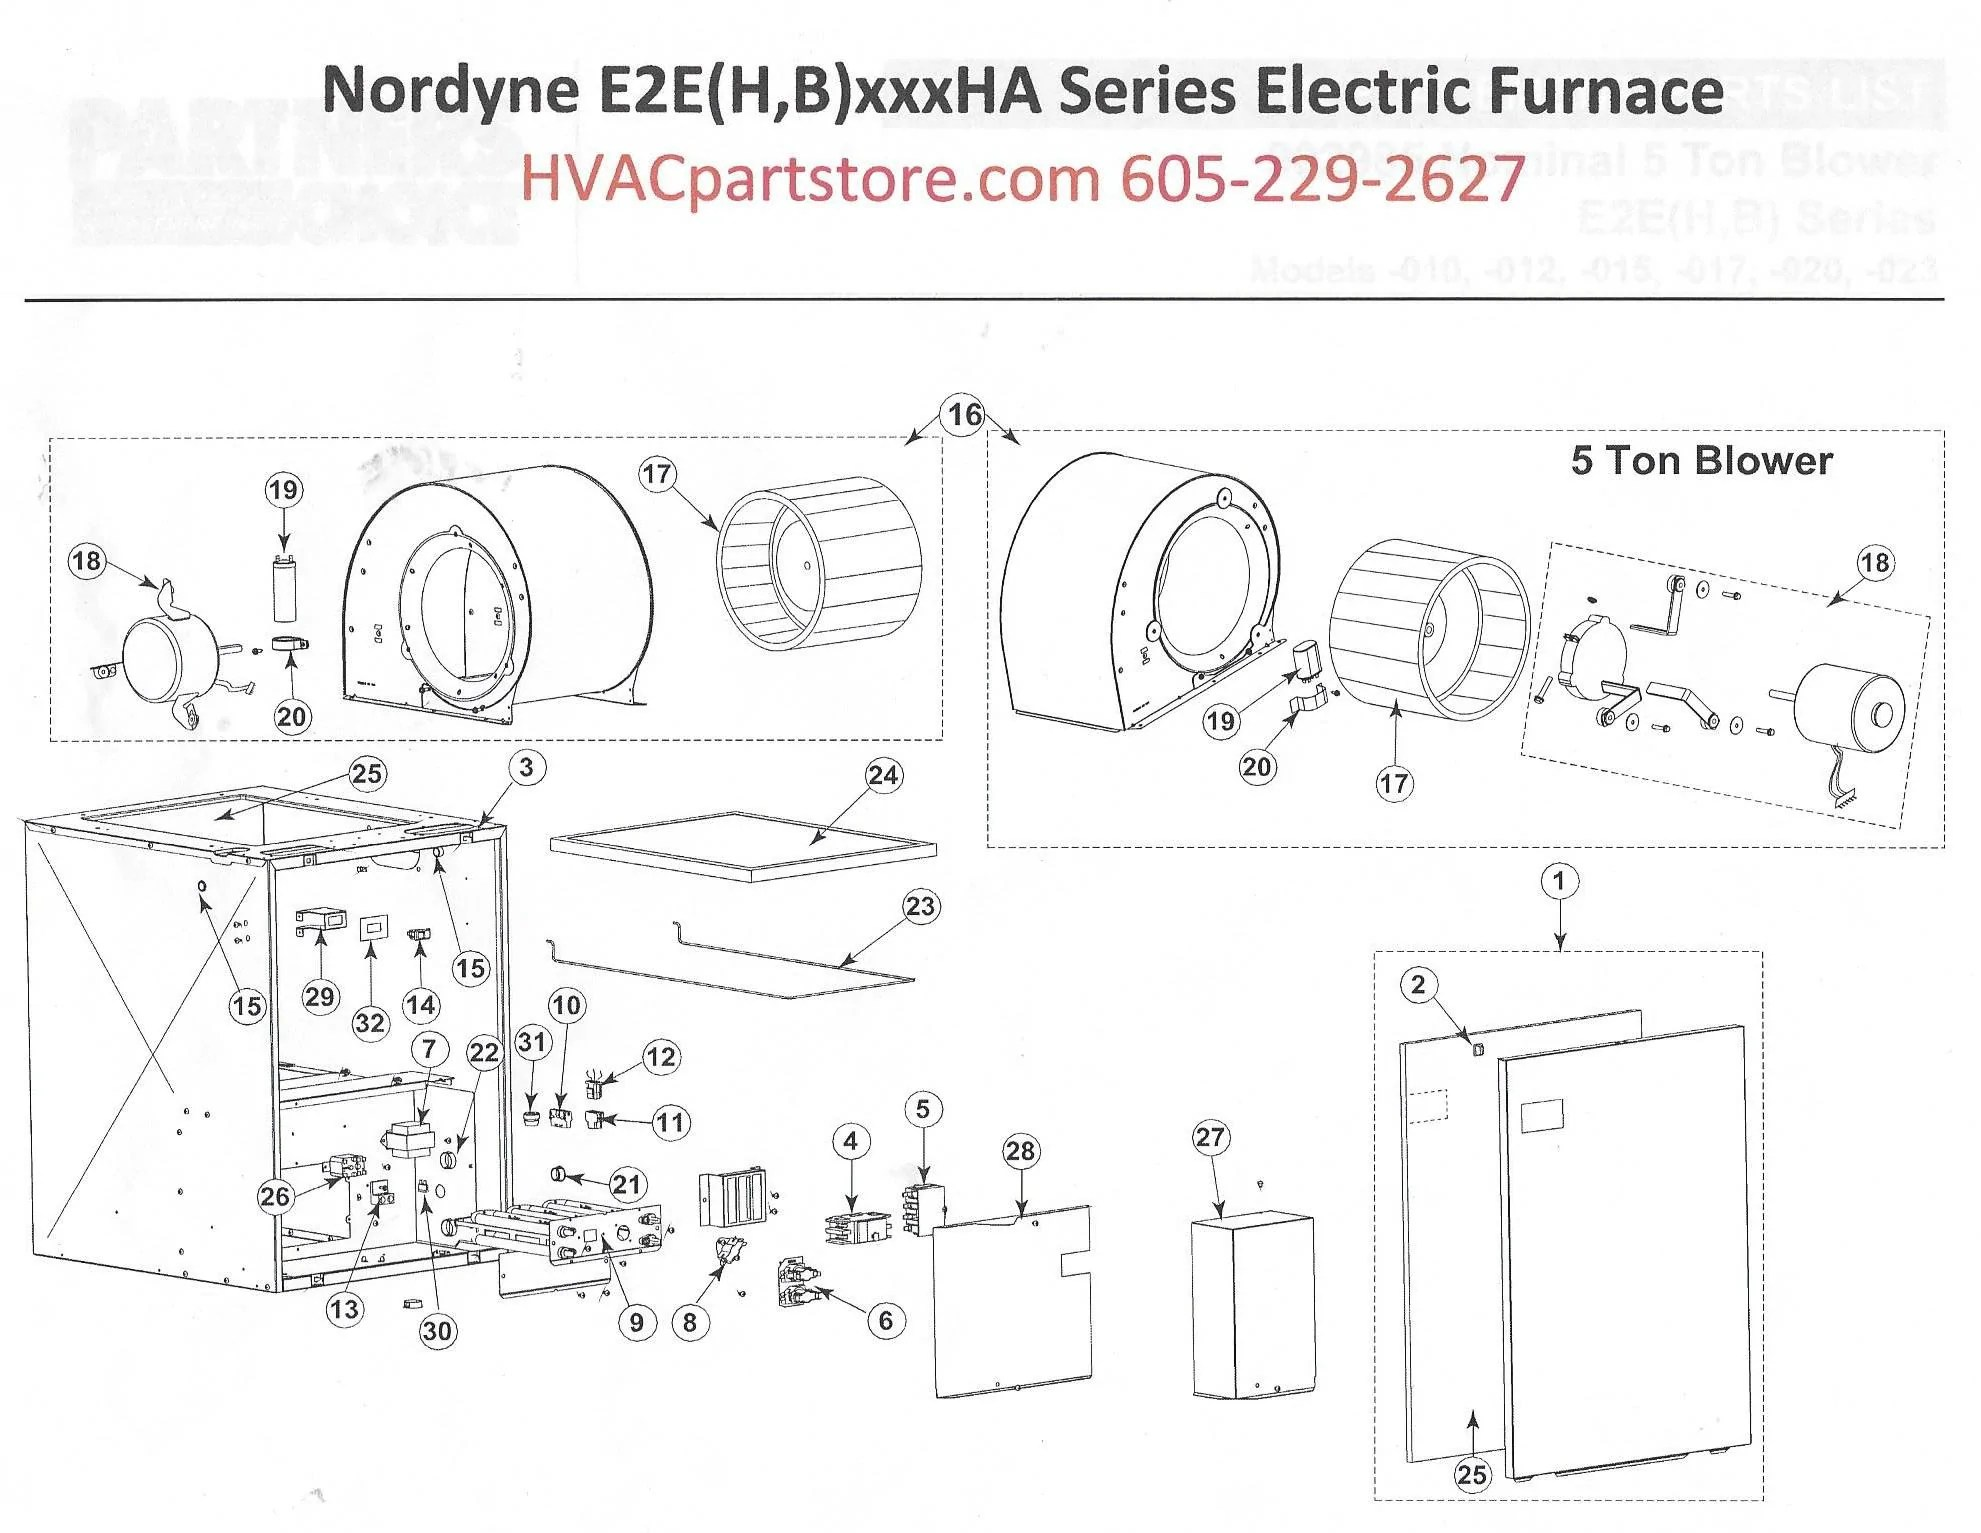 wiring diagram for nordyne electric furnace two way light switch e2eb015hb parts hvacpartstore